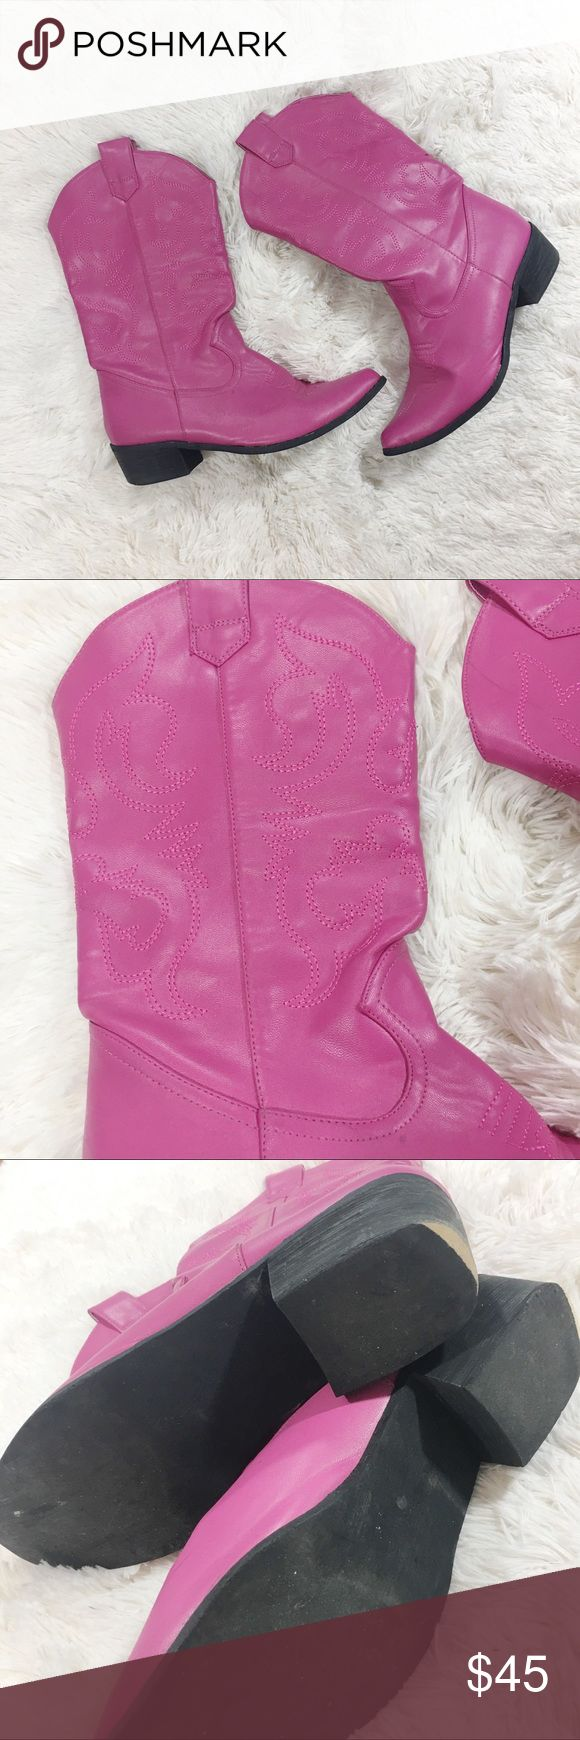 """Pink Women's Cowgirl Boots These adorable boots are in good, used condition. Bought them to wear to a concert. TBH I'm unsure of the size but I am usually a 8.5/9. Sole is about 10.5"""", width 2.5"""", heel 2"""", and calf circumference approx. 11"""". Little bit of scuffing around heel and toe as shown. Smoke free/pet free home. These were super hard to pass up! Shoes Heeled Boots"""